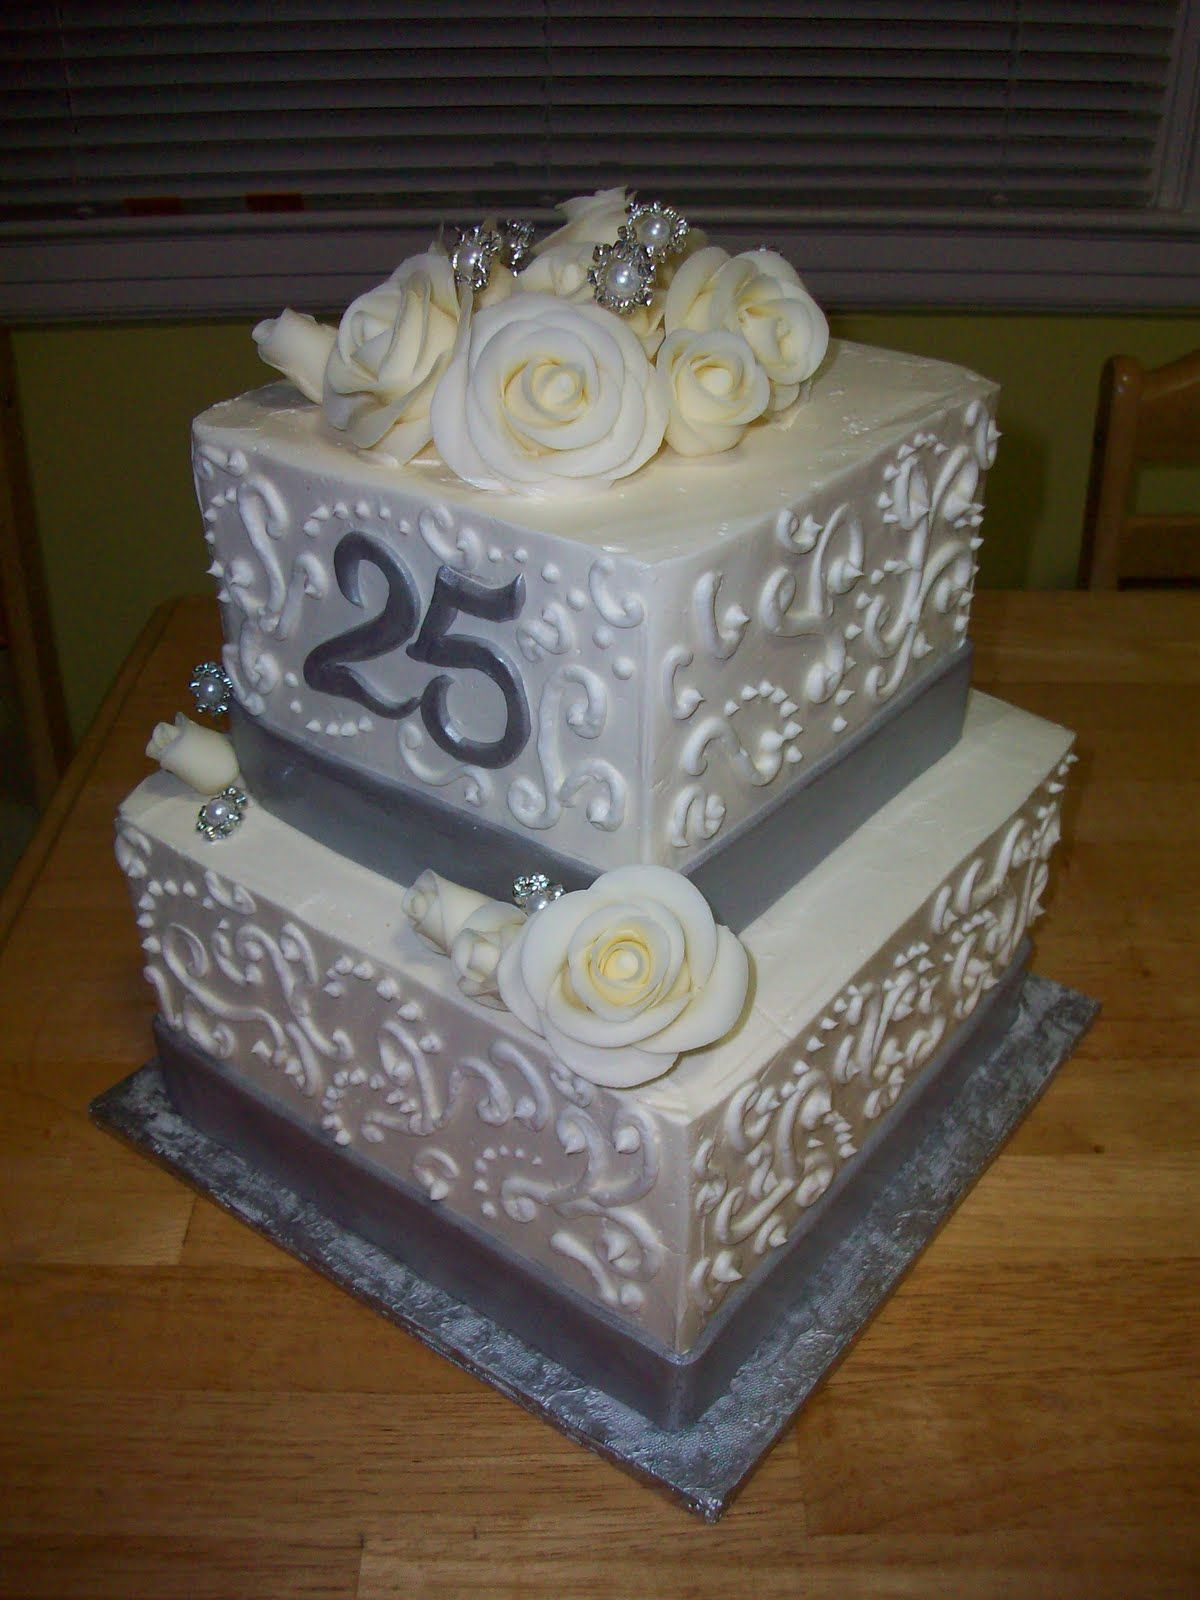 25th wedding anniversary cake ideas 25 anniversary cake search cake ideas 1072